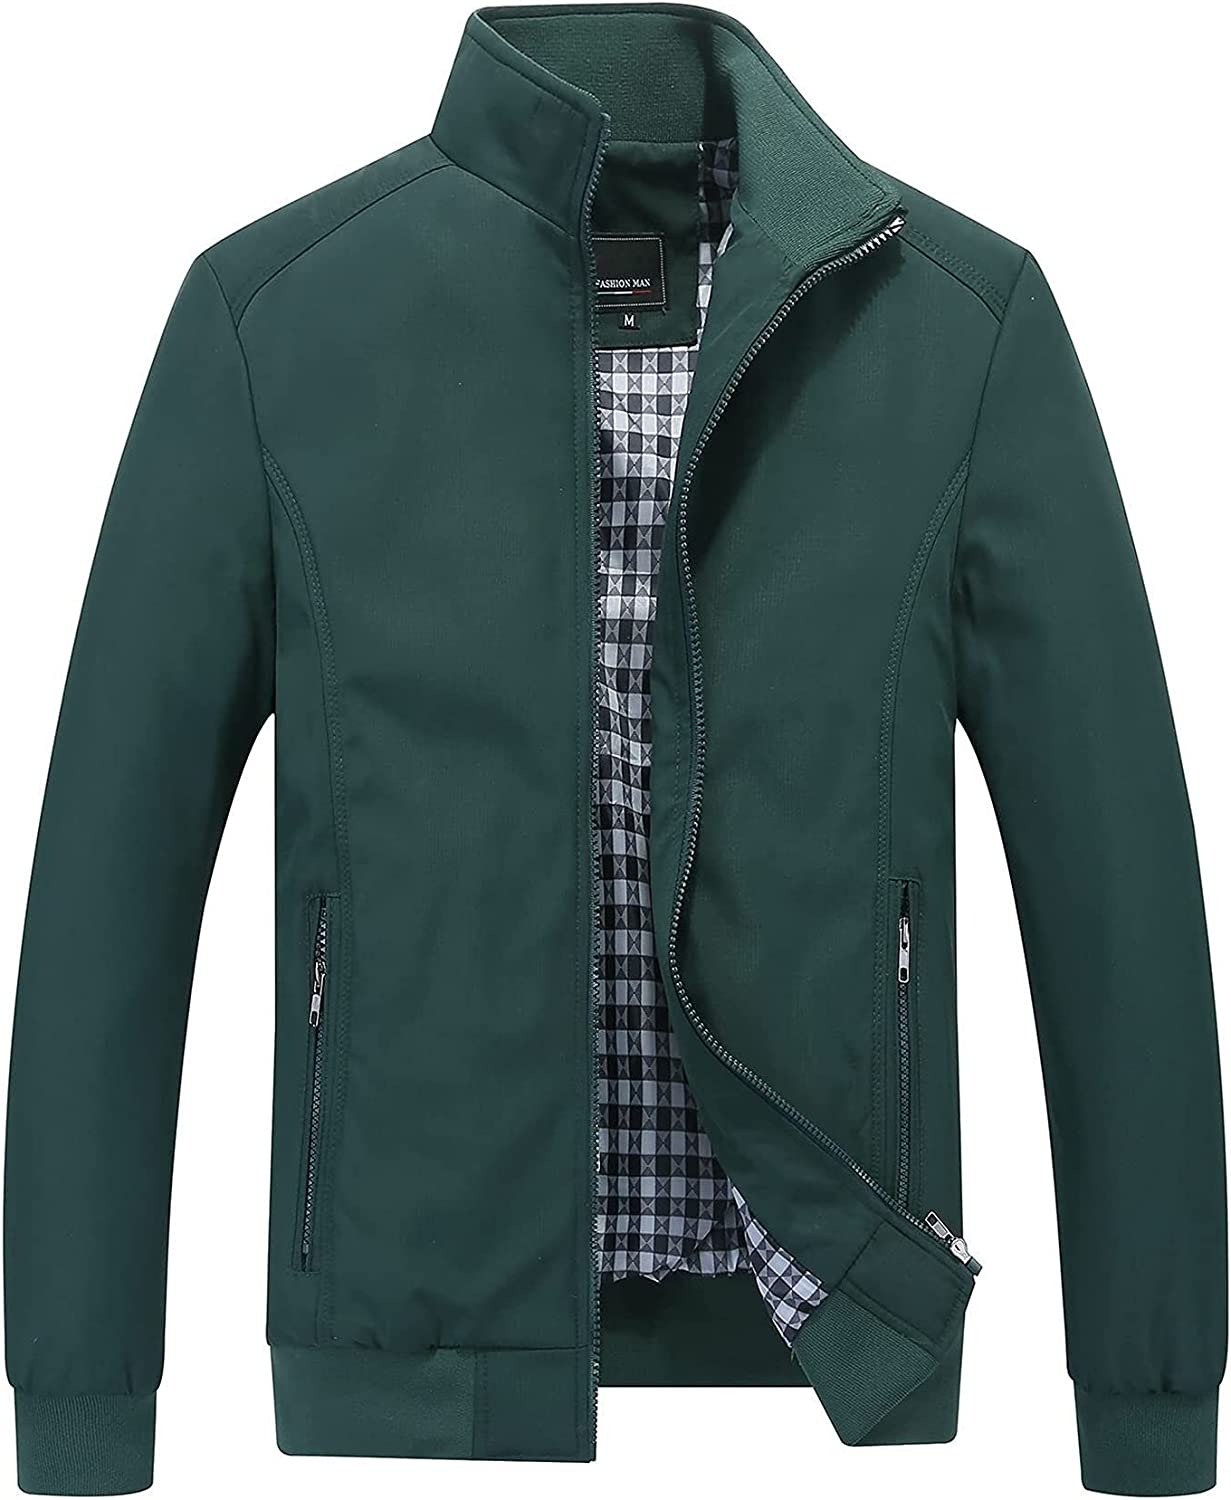 CRMY HSOSK Men's Jacket Collar 4 years warranty Transition Ultra-Cheap Deals Stand-up with